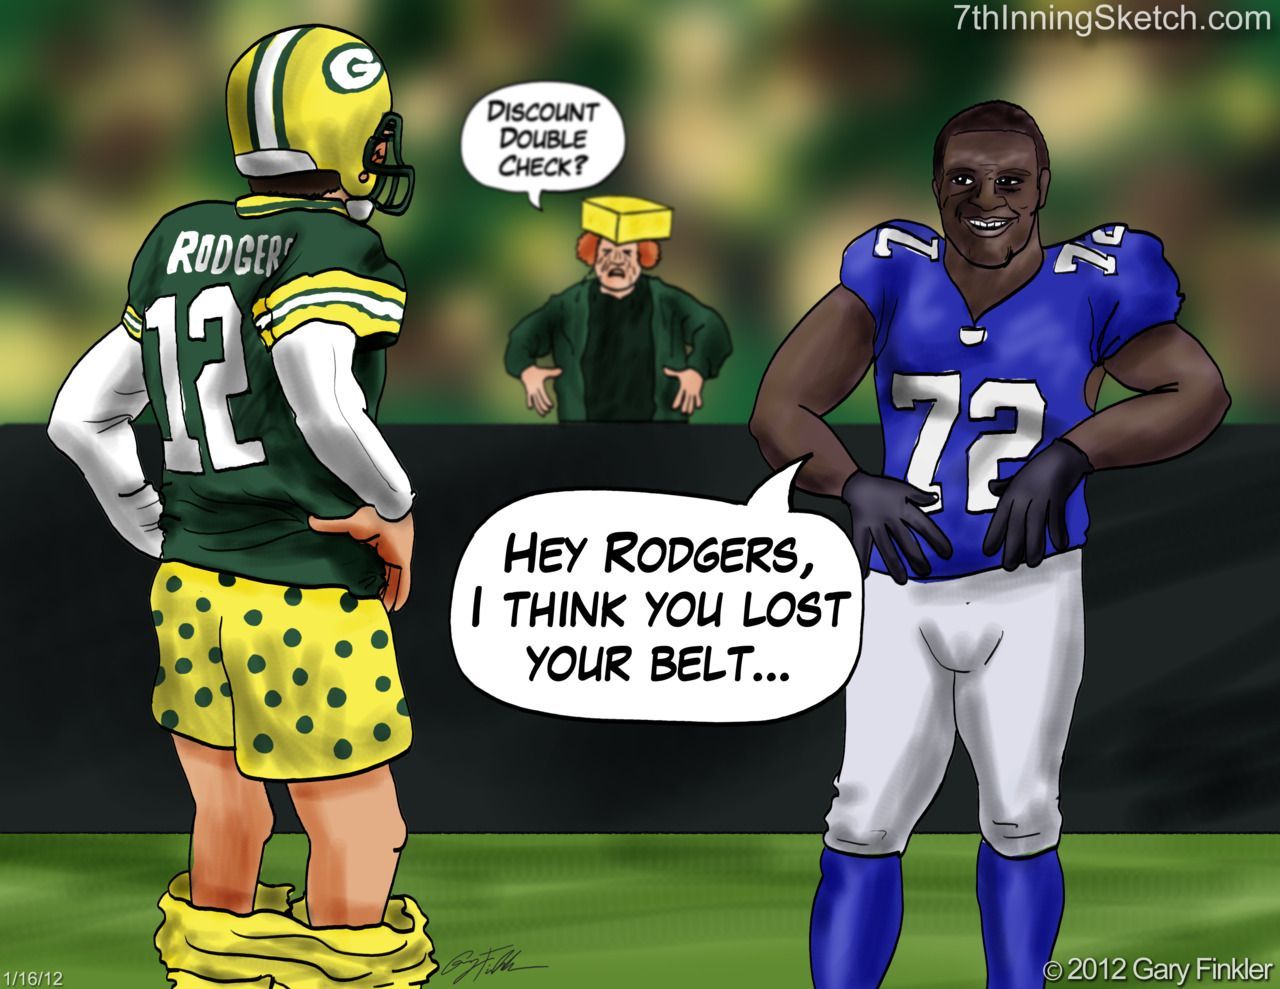 Green Bay Packers Football Football Funnies Green Bay Packers And Aaron Rodgers Discount Double Football Funny Packers Football Green Bay Packers Football